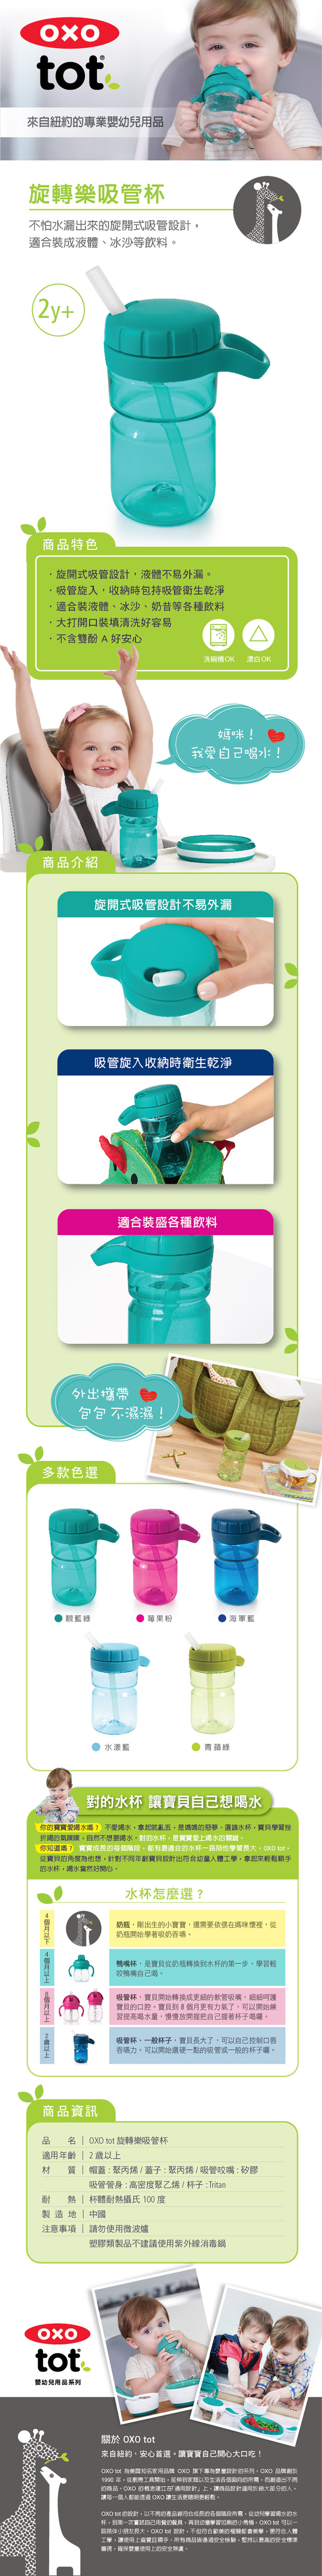 oxo tot kids twist top water drinking straw bottle 儿童旋转盖吸管水杯水瓶